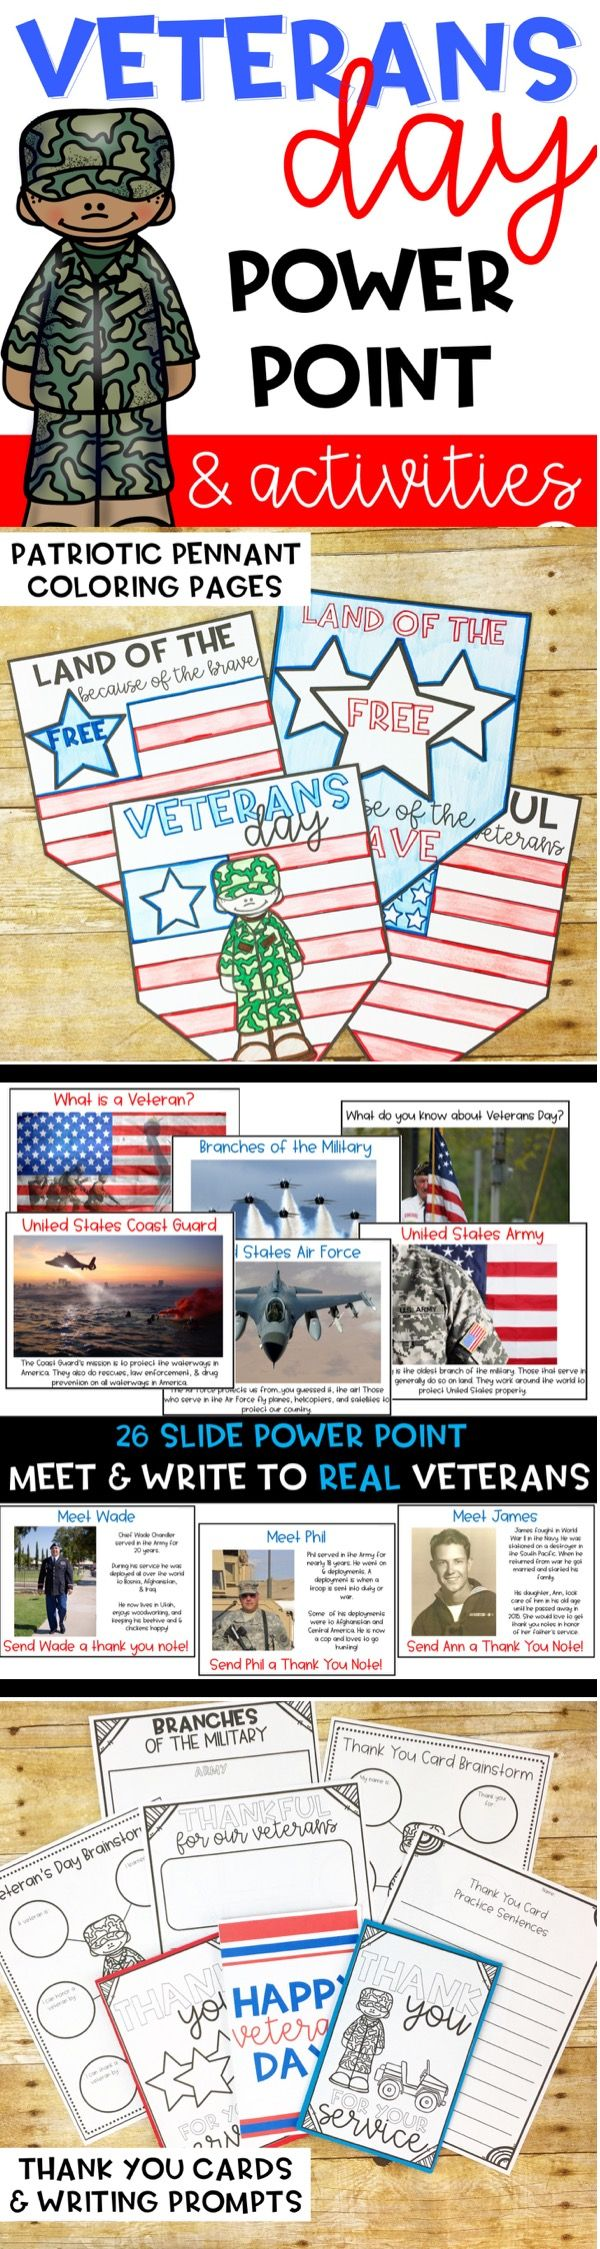 Veterans Day Power Point & Activities for Elementary and middle school.